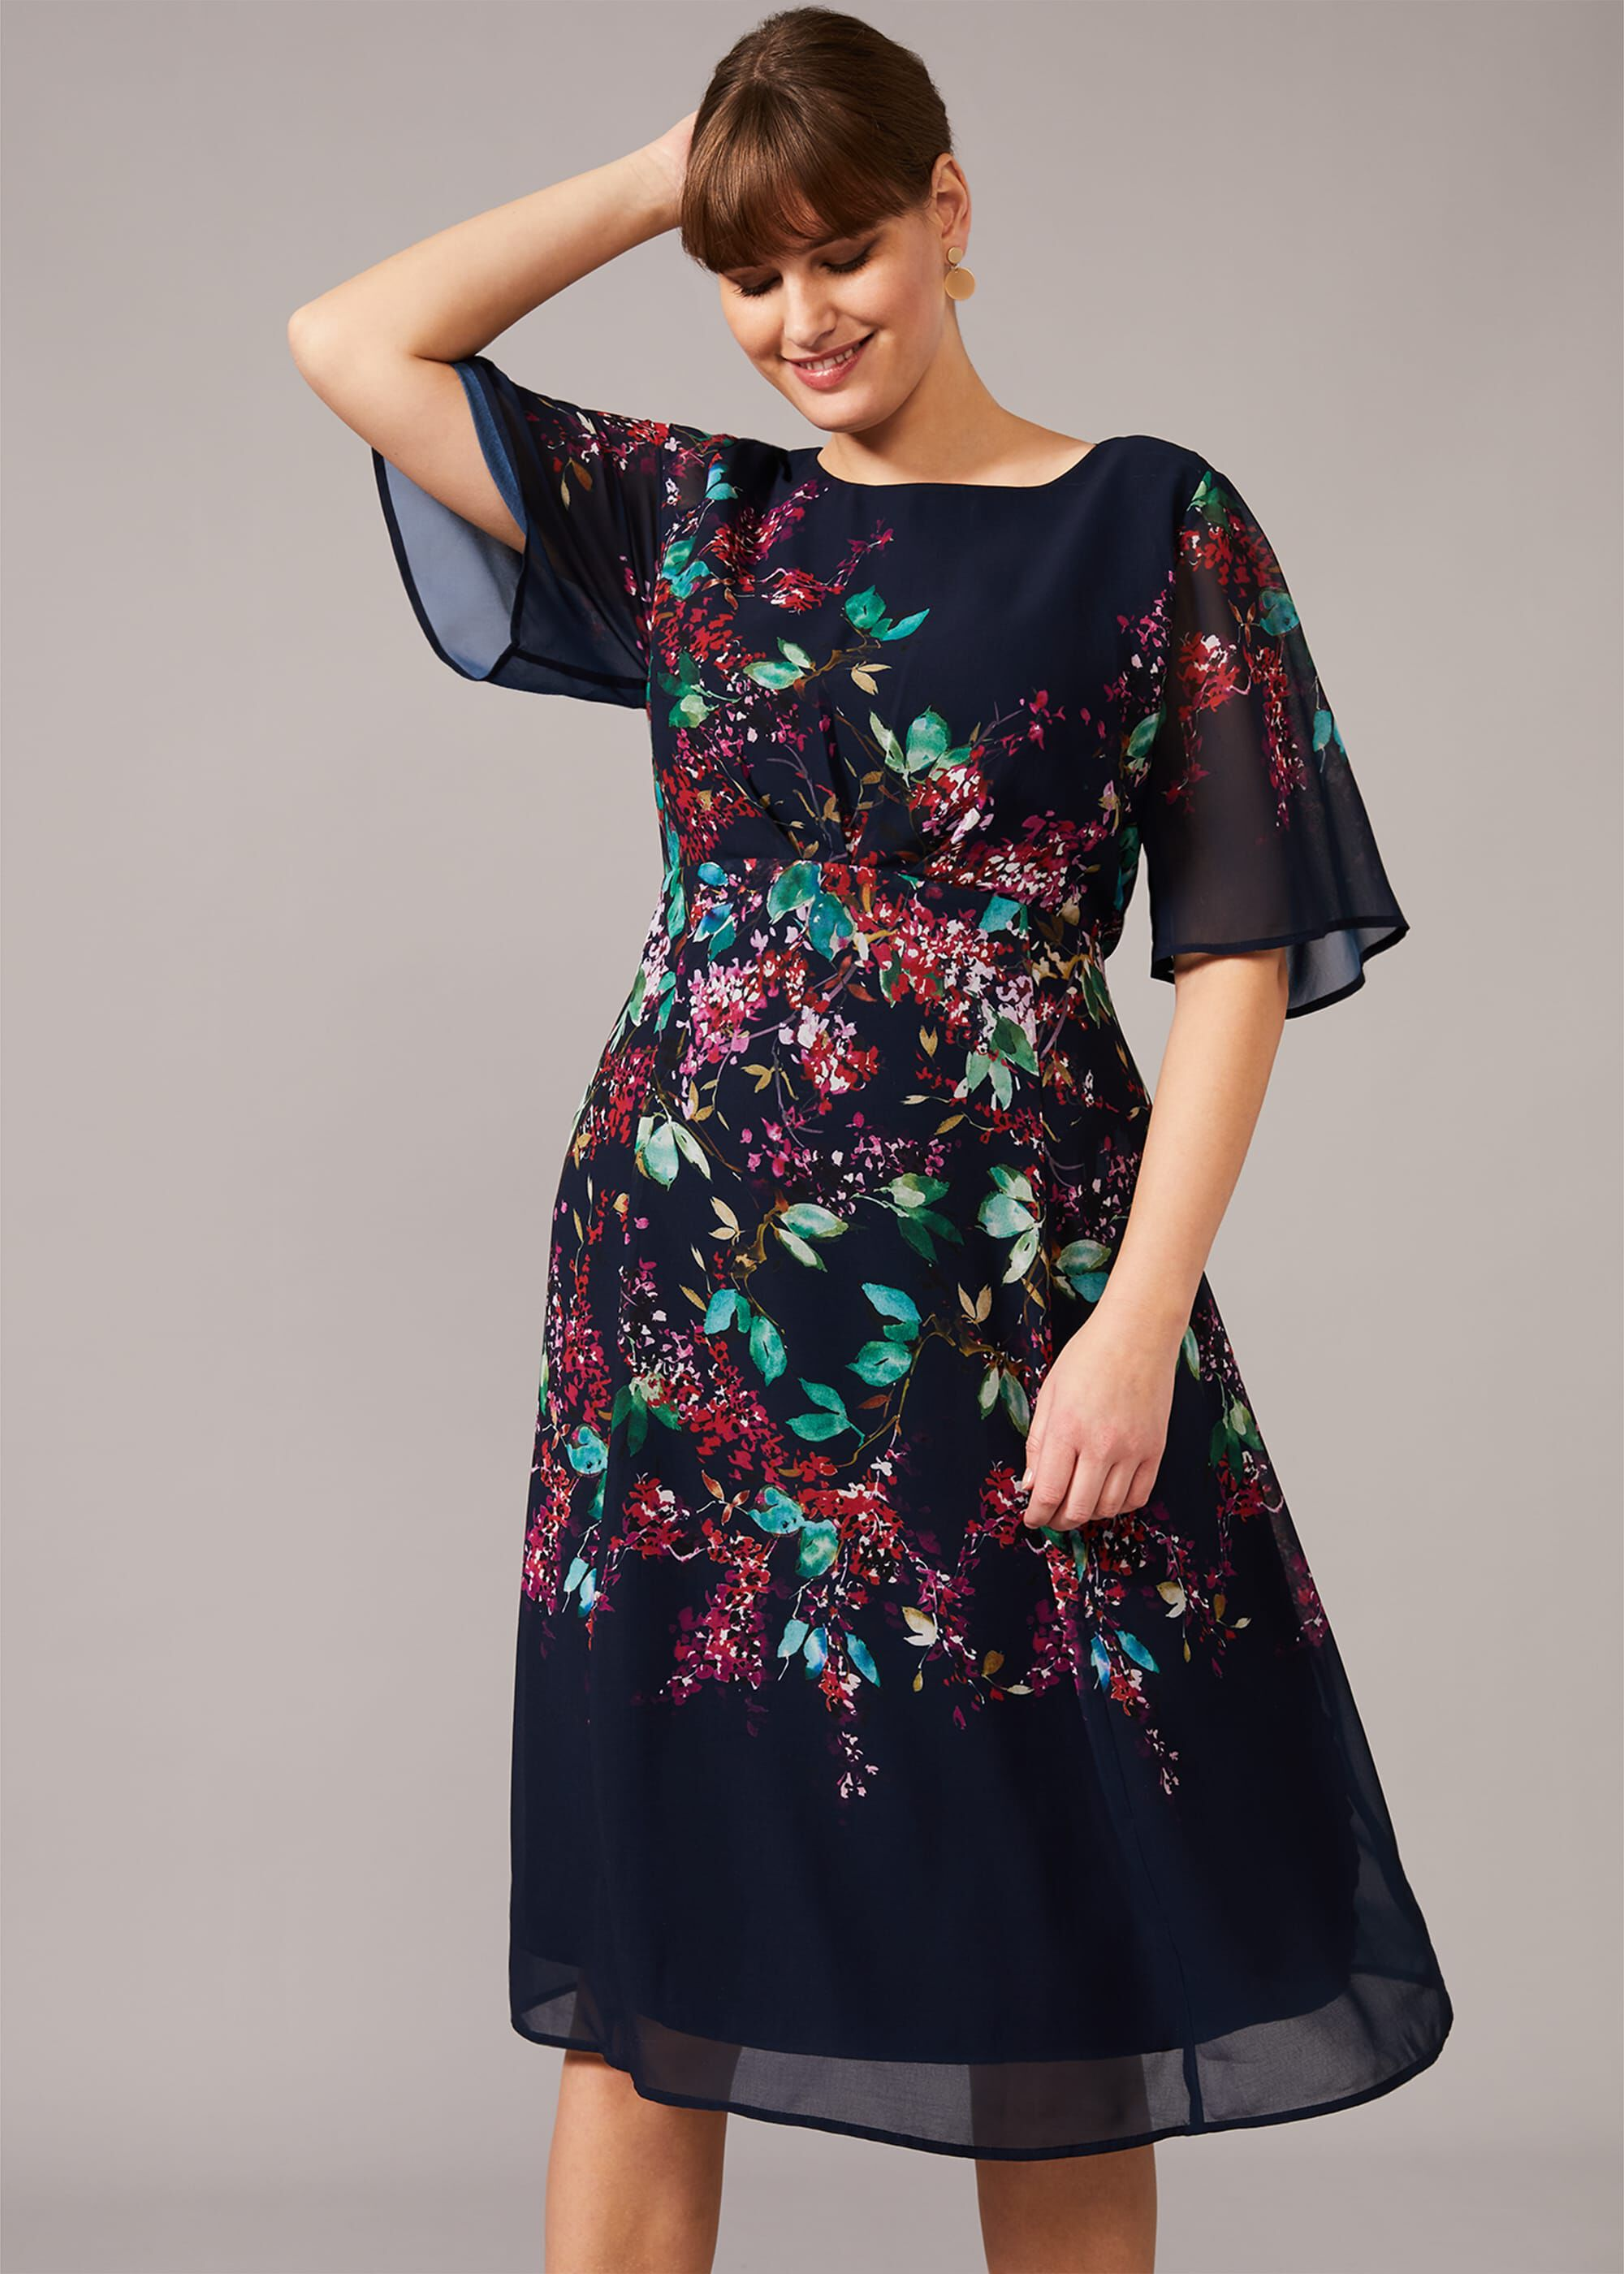 Studio 8 Codie Floral Dress, Blue, Fit & Flare, Occasion Dress